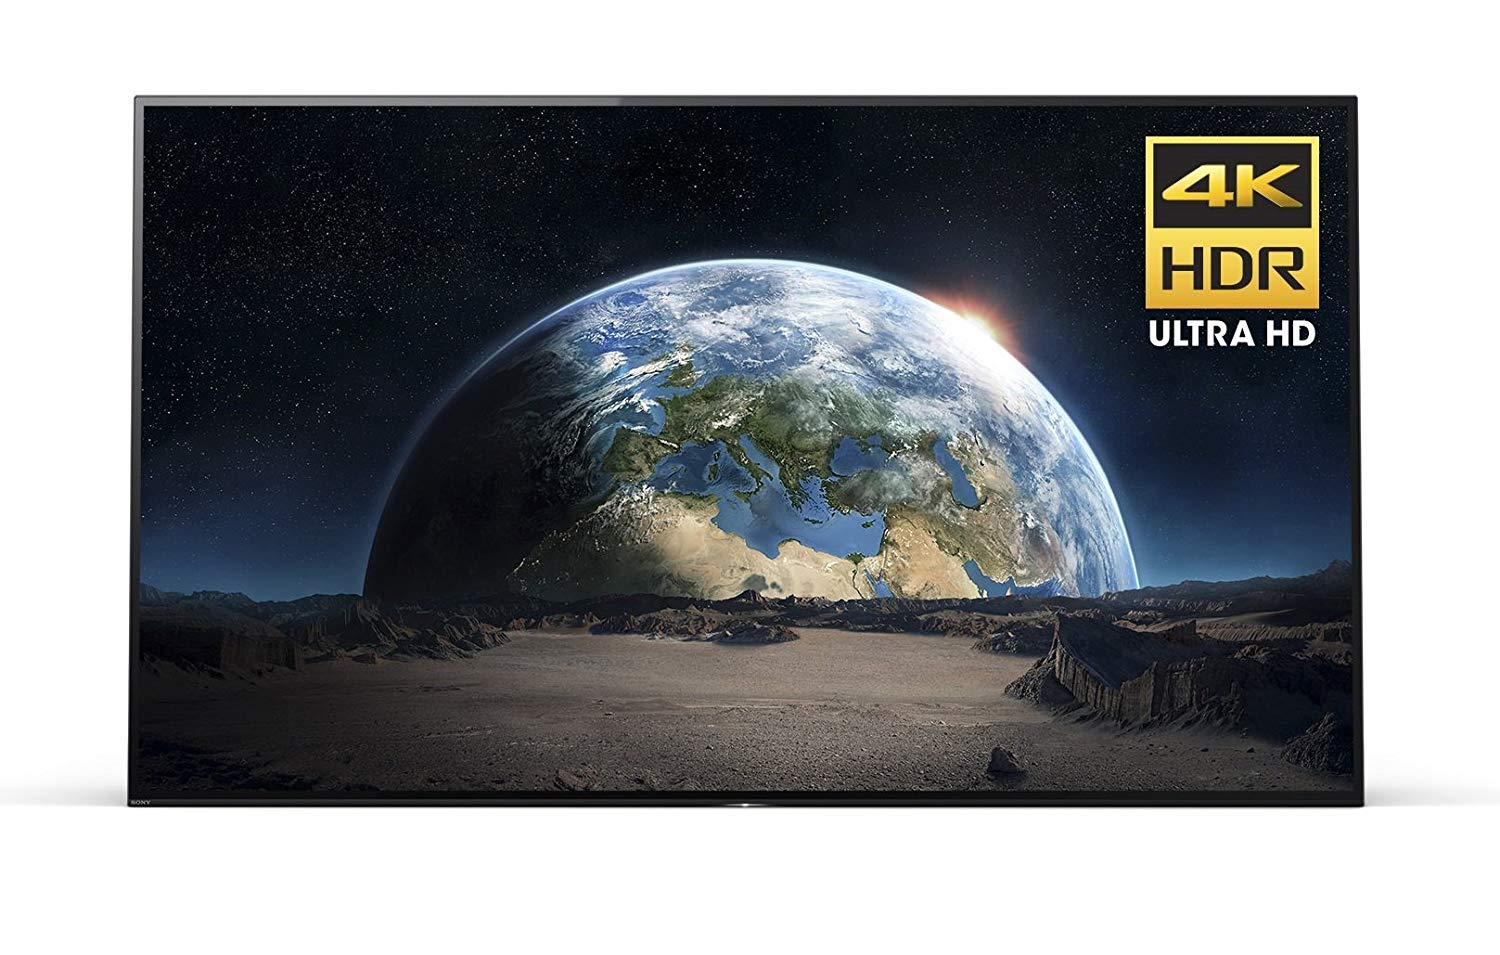 An image of Sony XBR55A1E 55-Inch HDR 4K OLED Smart TV with Sony Motionflow XR